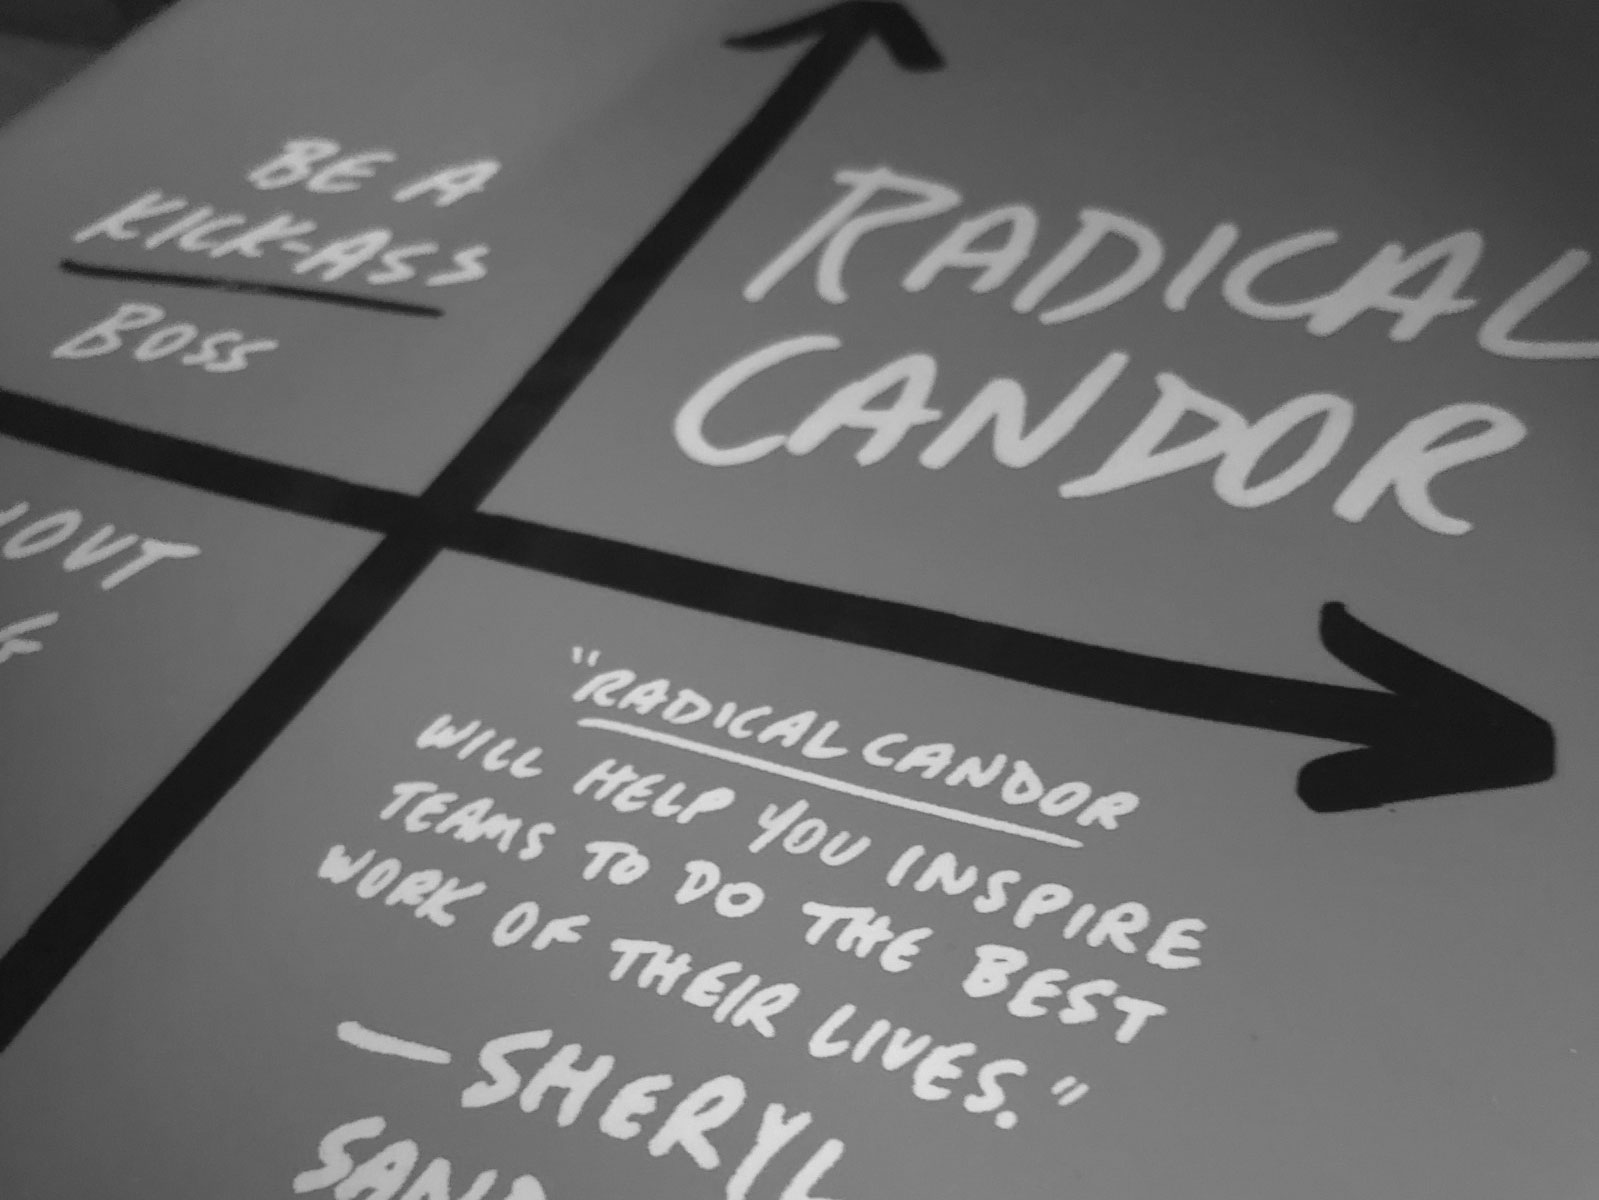 """Buchtipp: """"Radical Candor – Be a kickass boss without losing your humanity"""" by Kim Scott"""